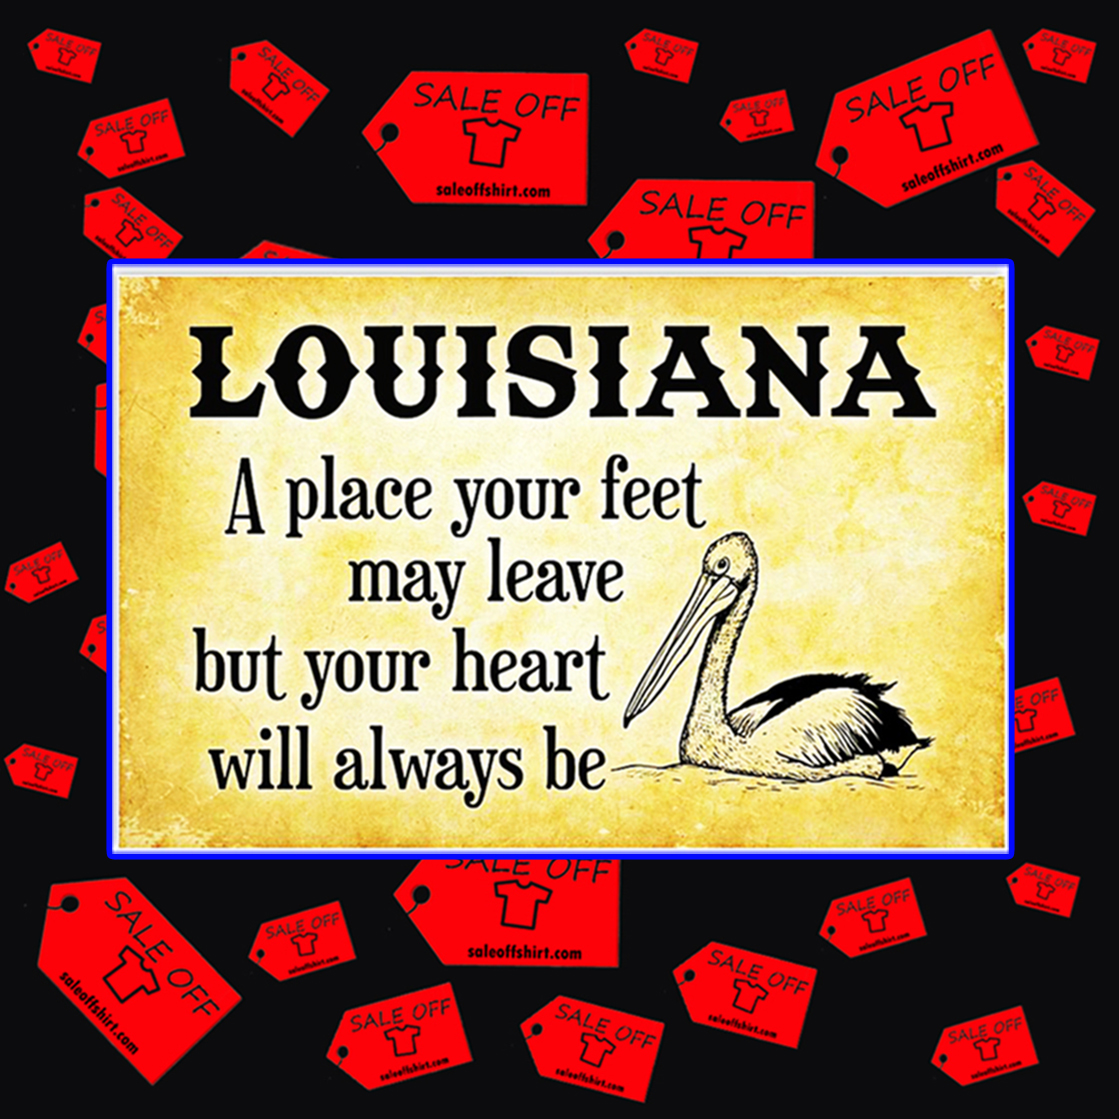 Louisiana a place your feet may leave but your heart will always be poster 17x11